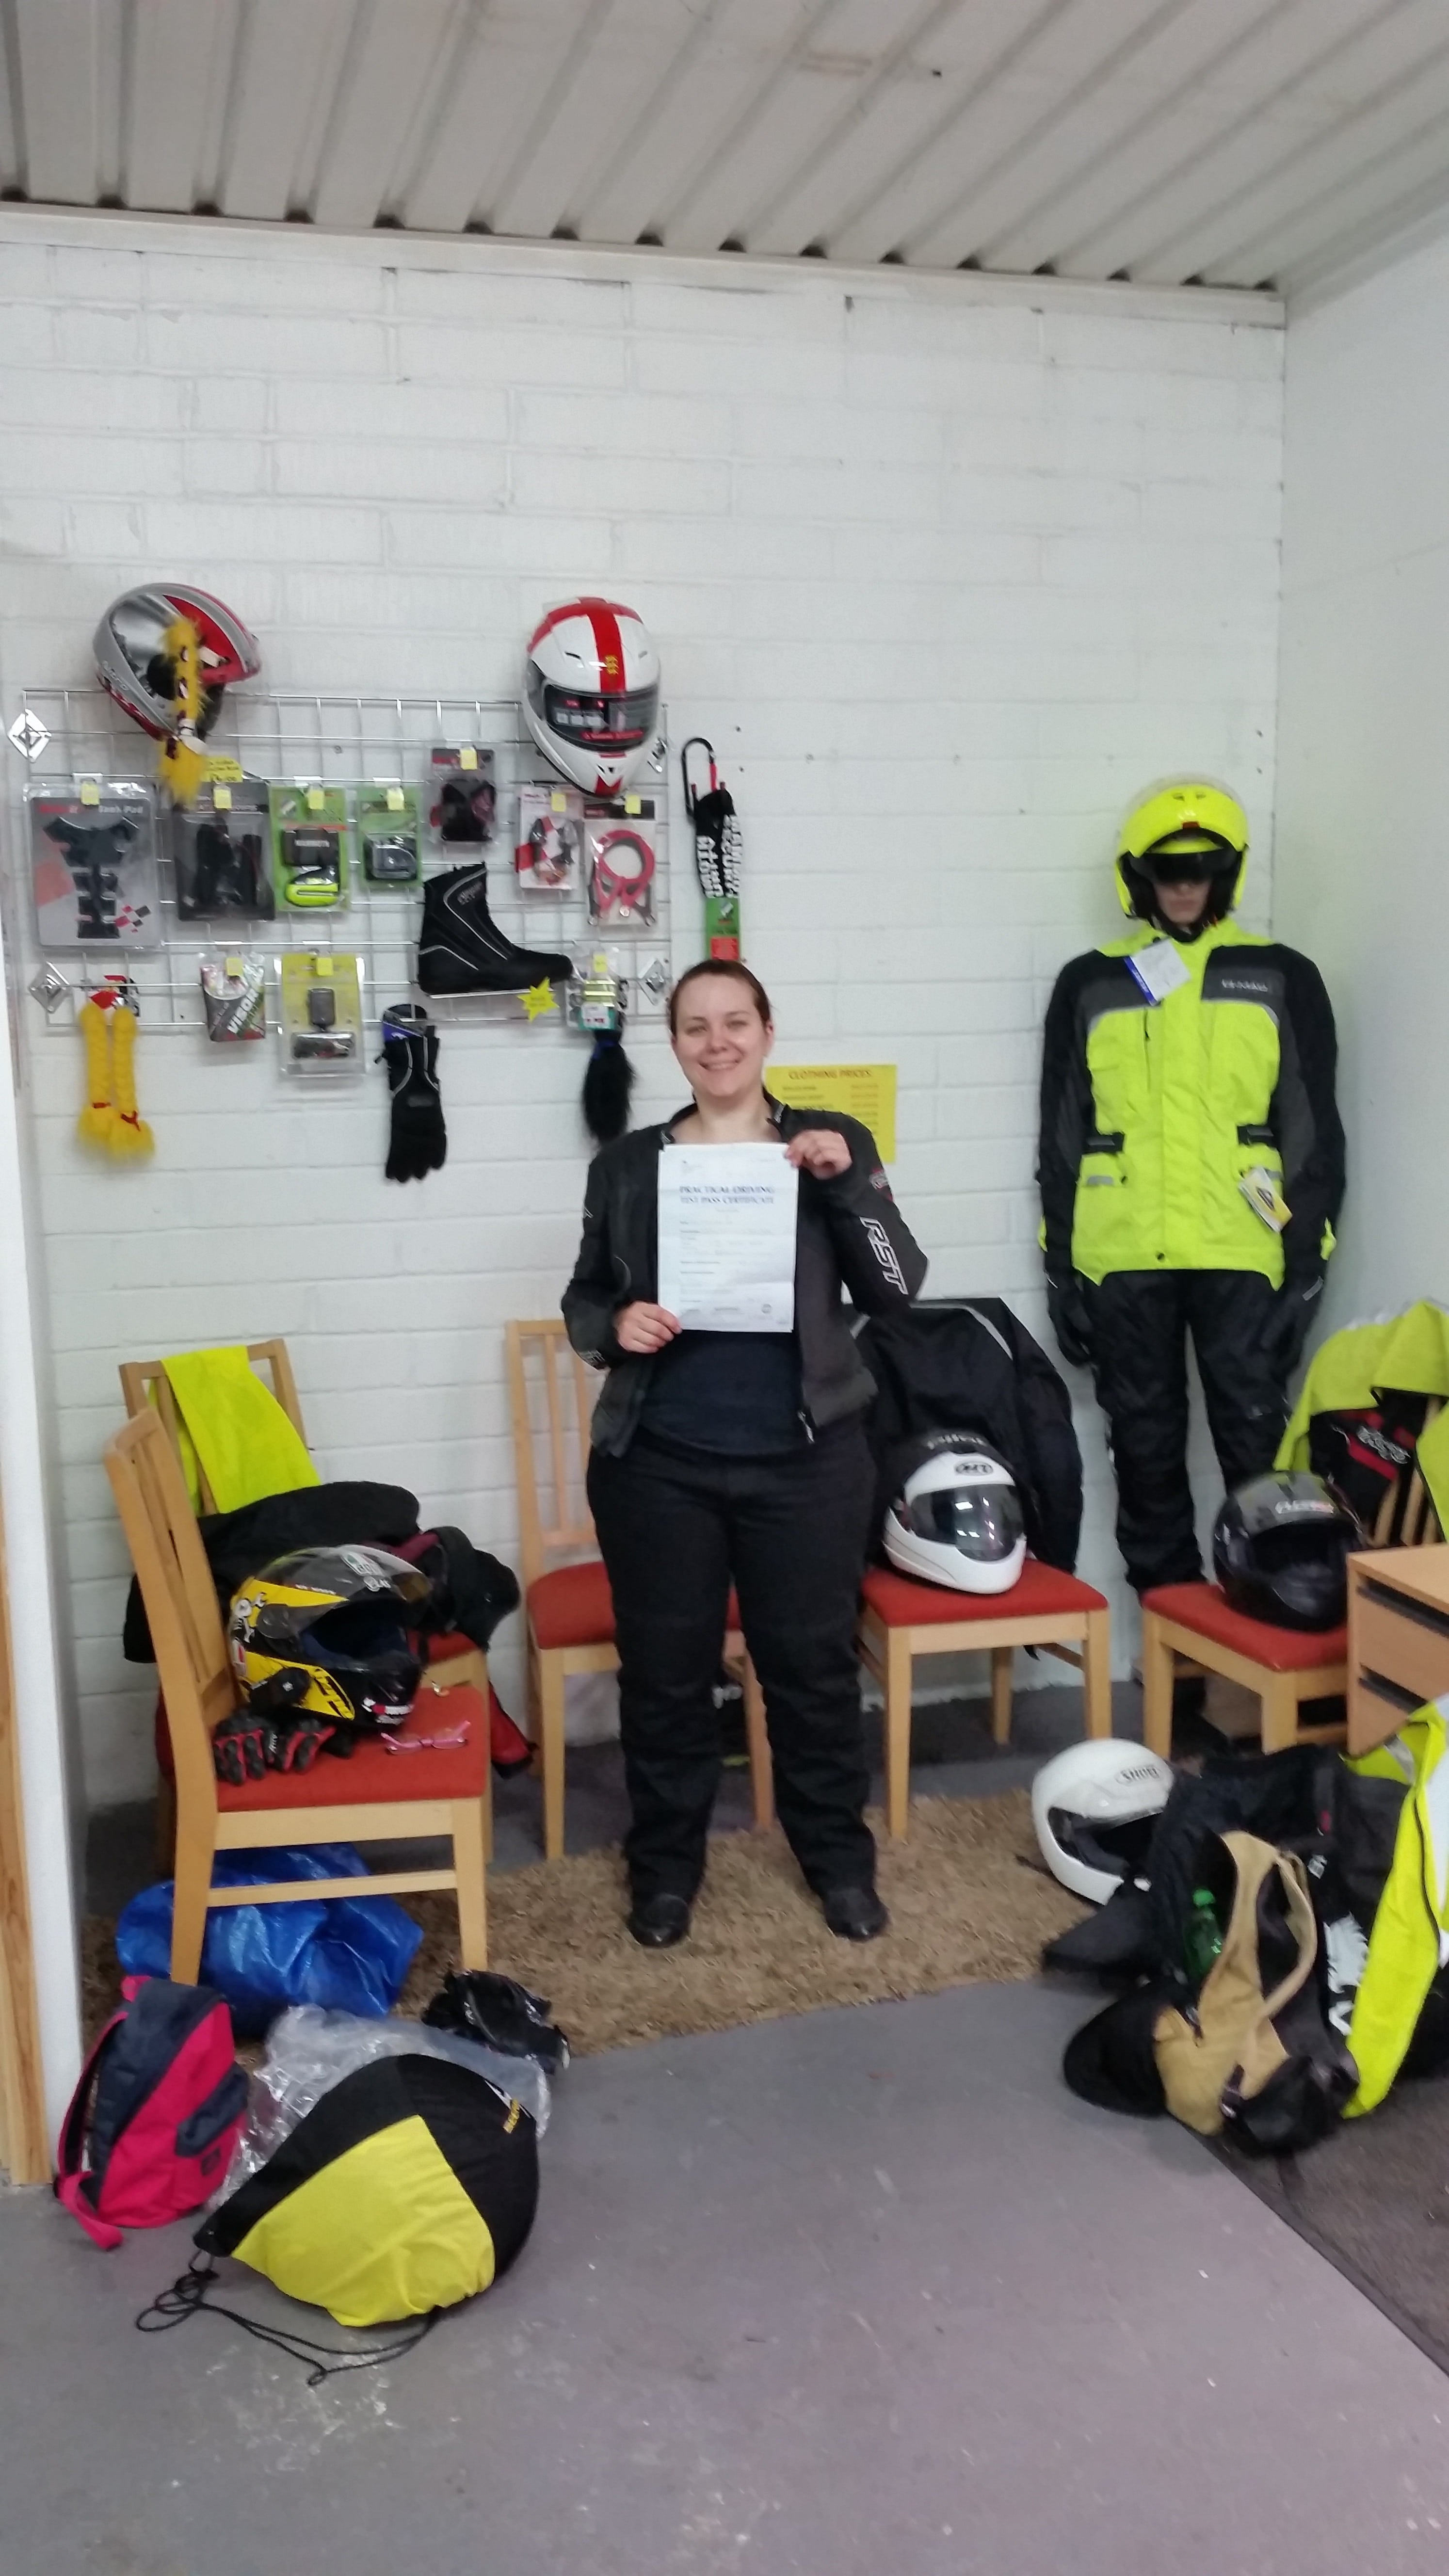 Claire from Crawley proudly showing her DAS pass